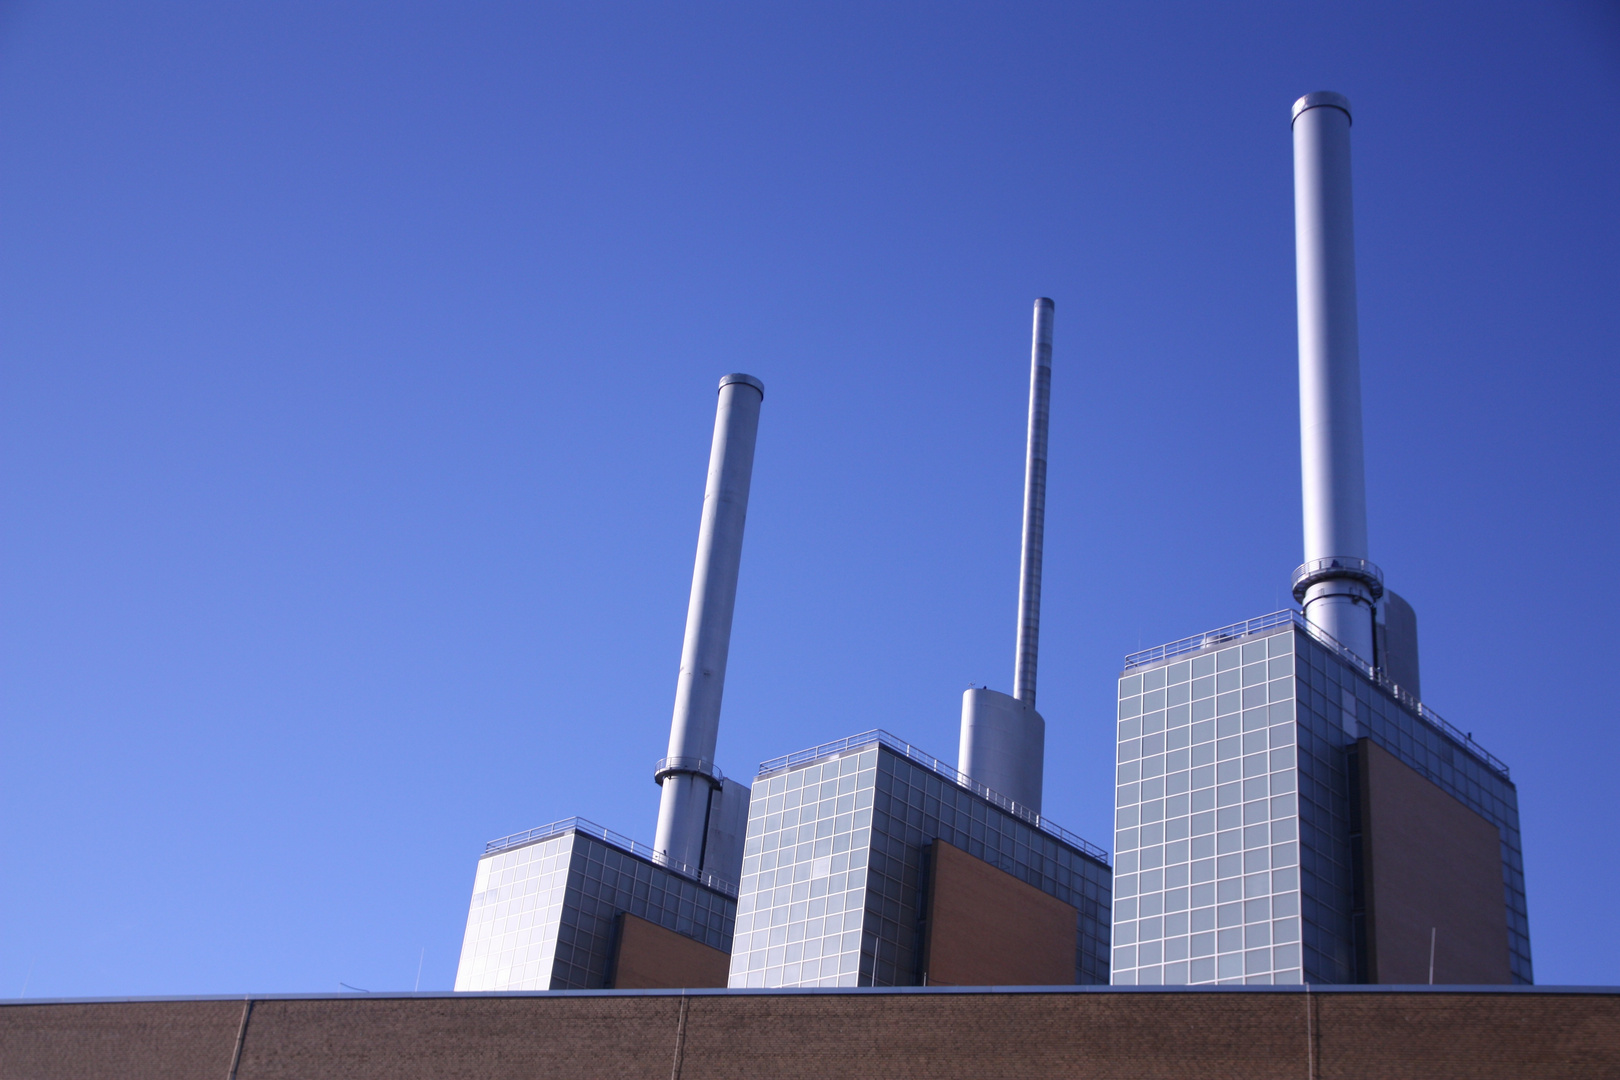 Hannover power station